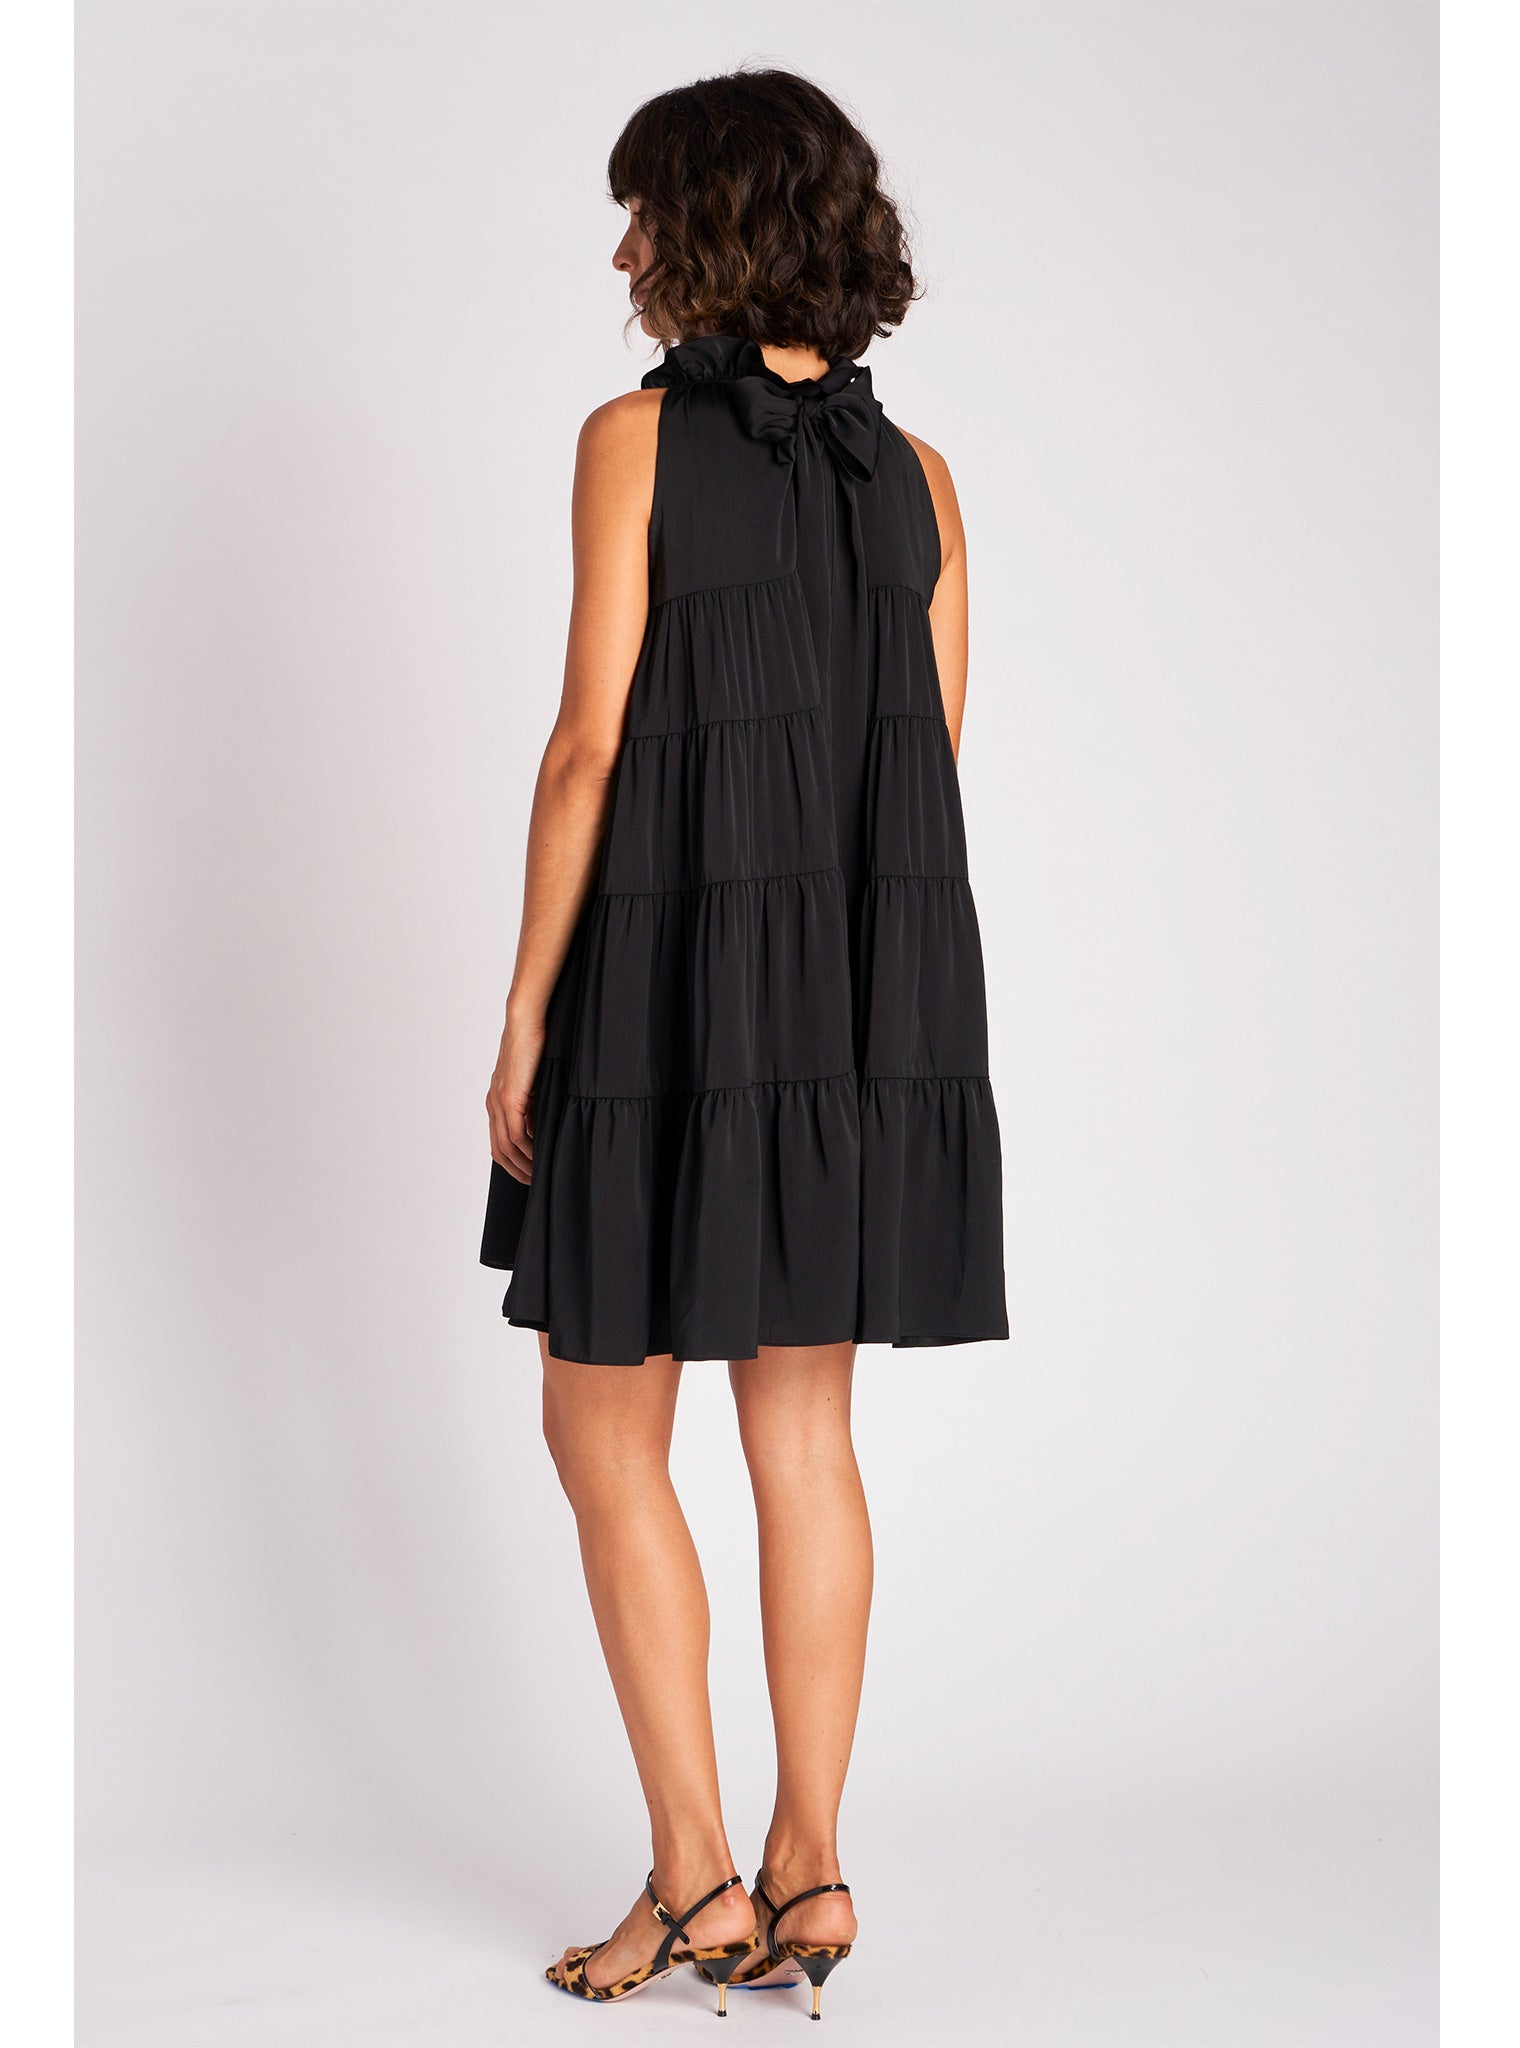 Billy Dress | Black